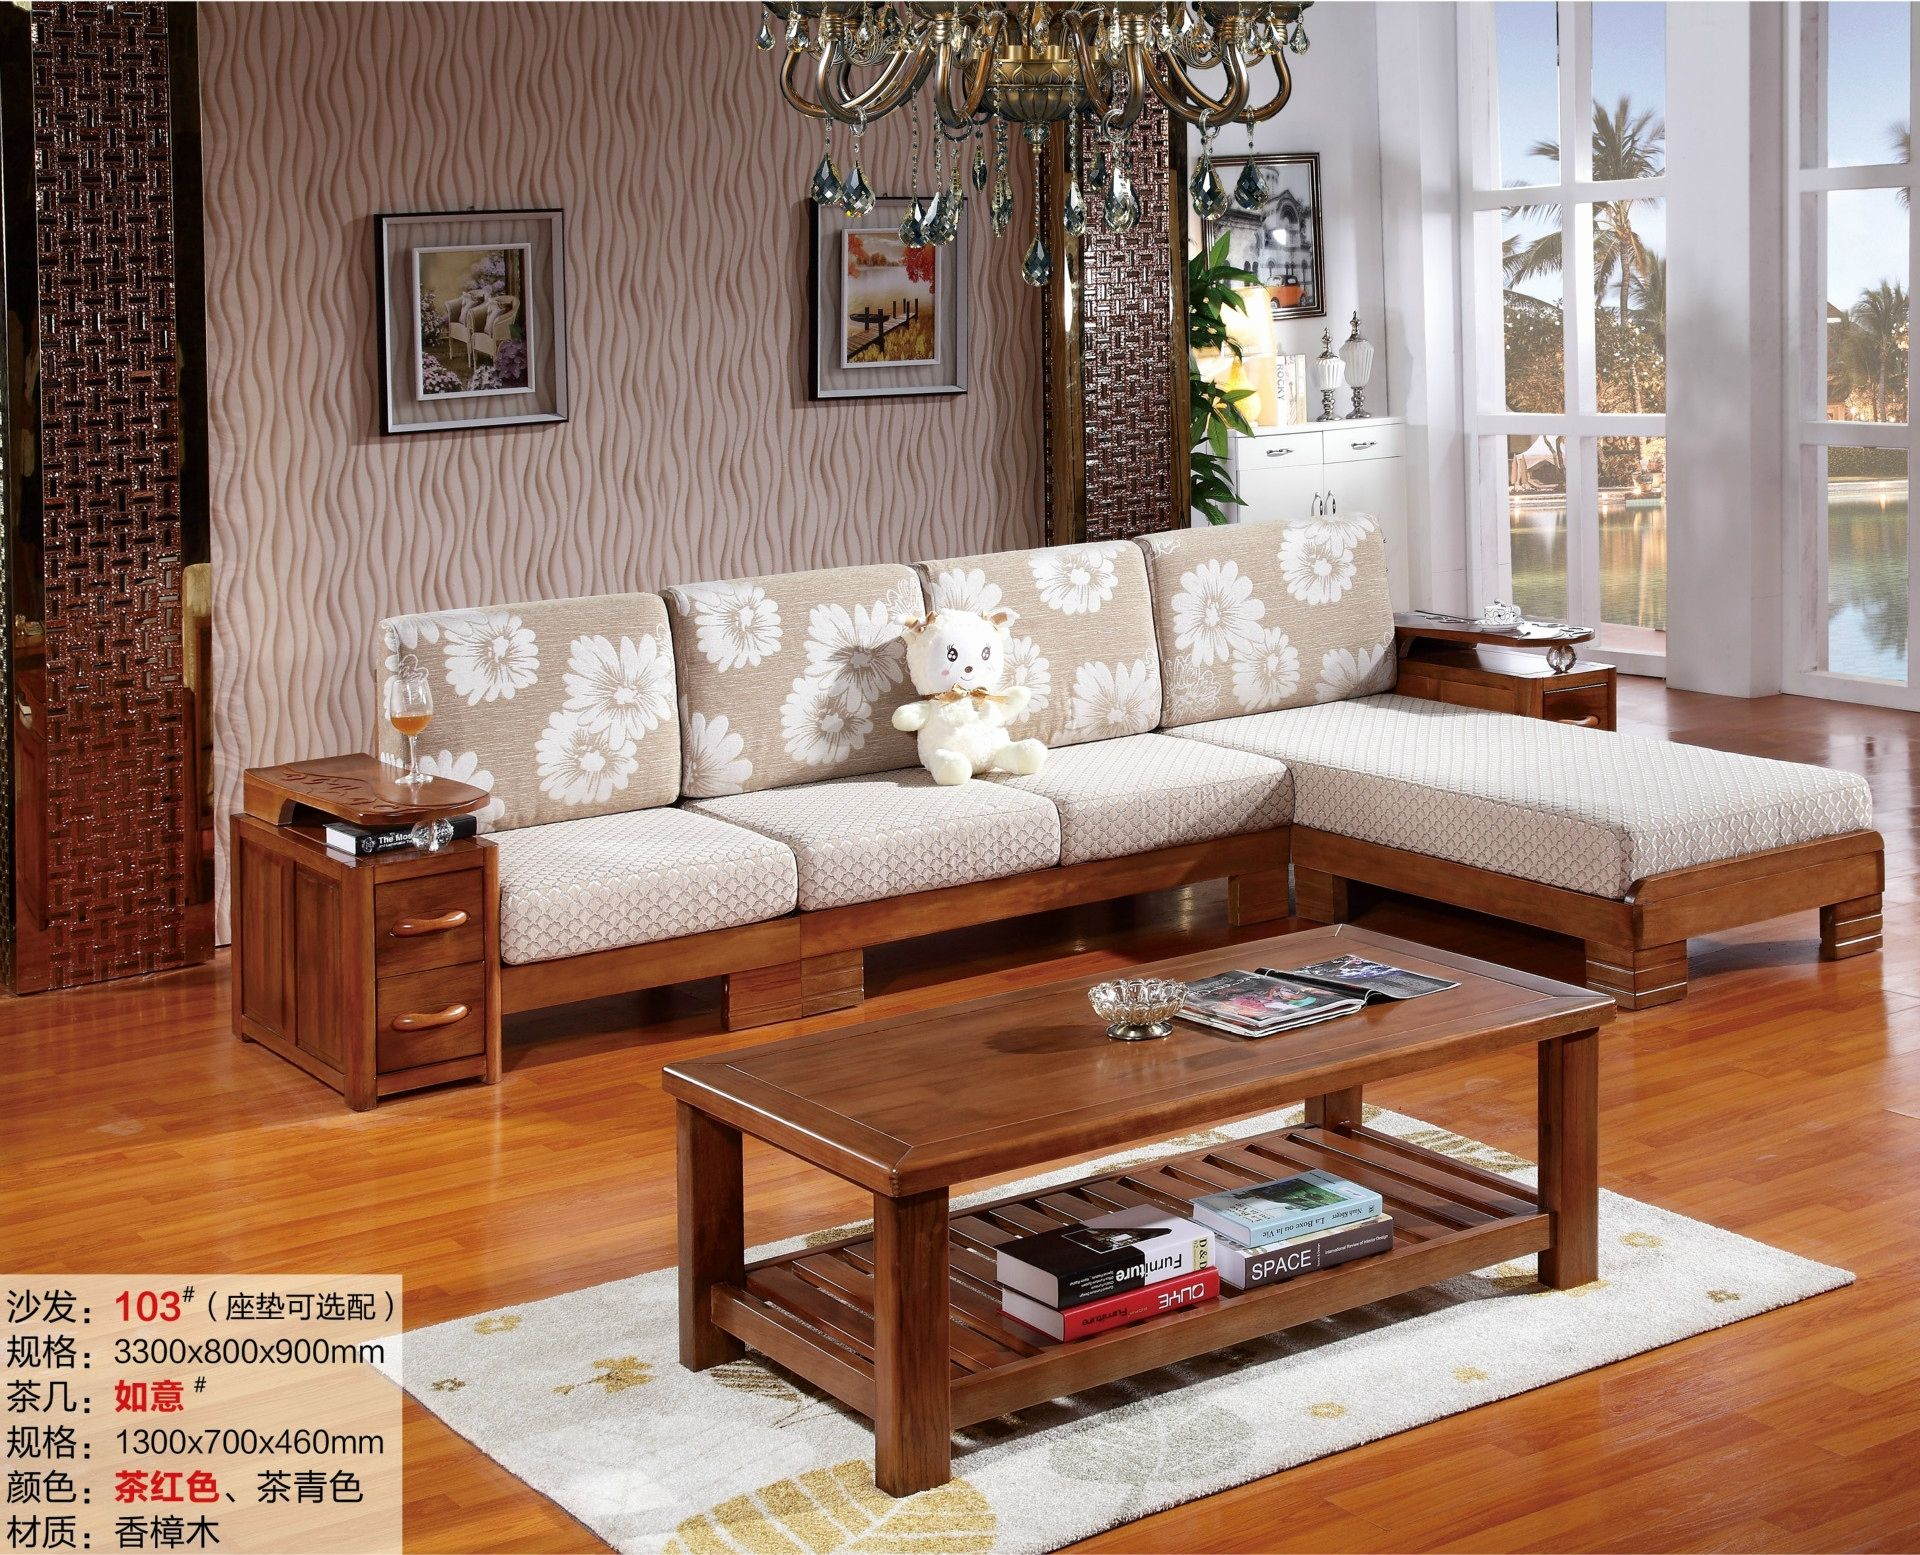 Living Room Furniture Philippines Living Room Sofa Living Room Sofa Design Wooden Sofa Designs